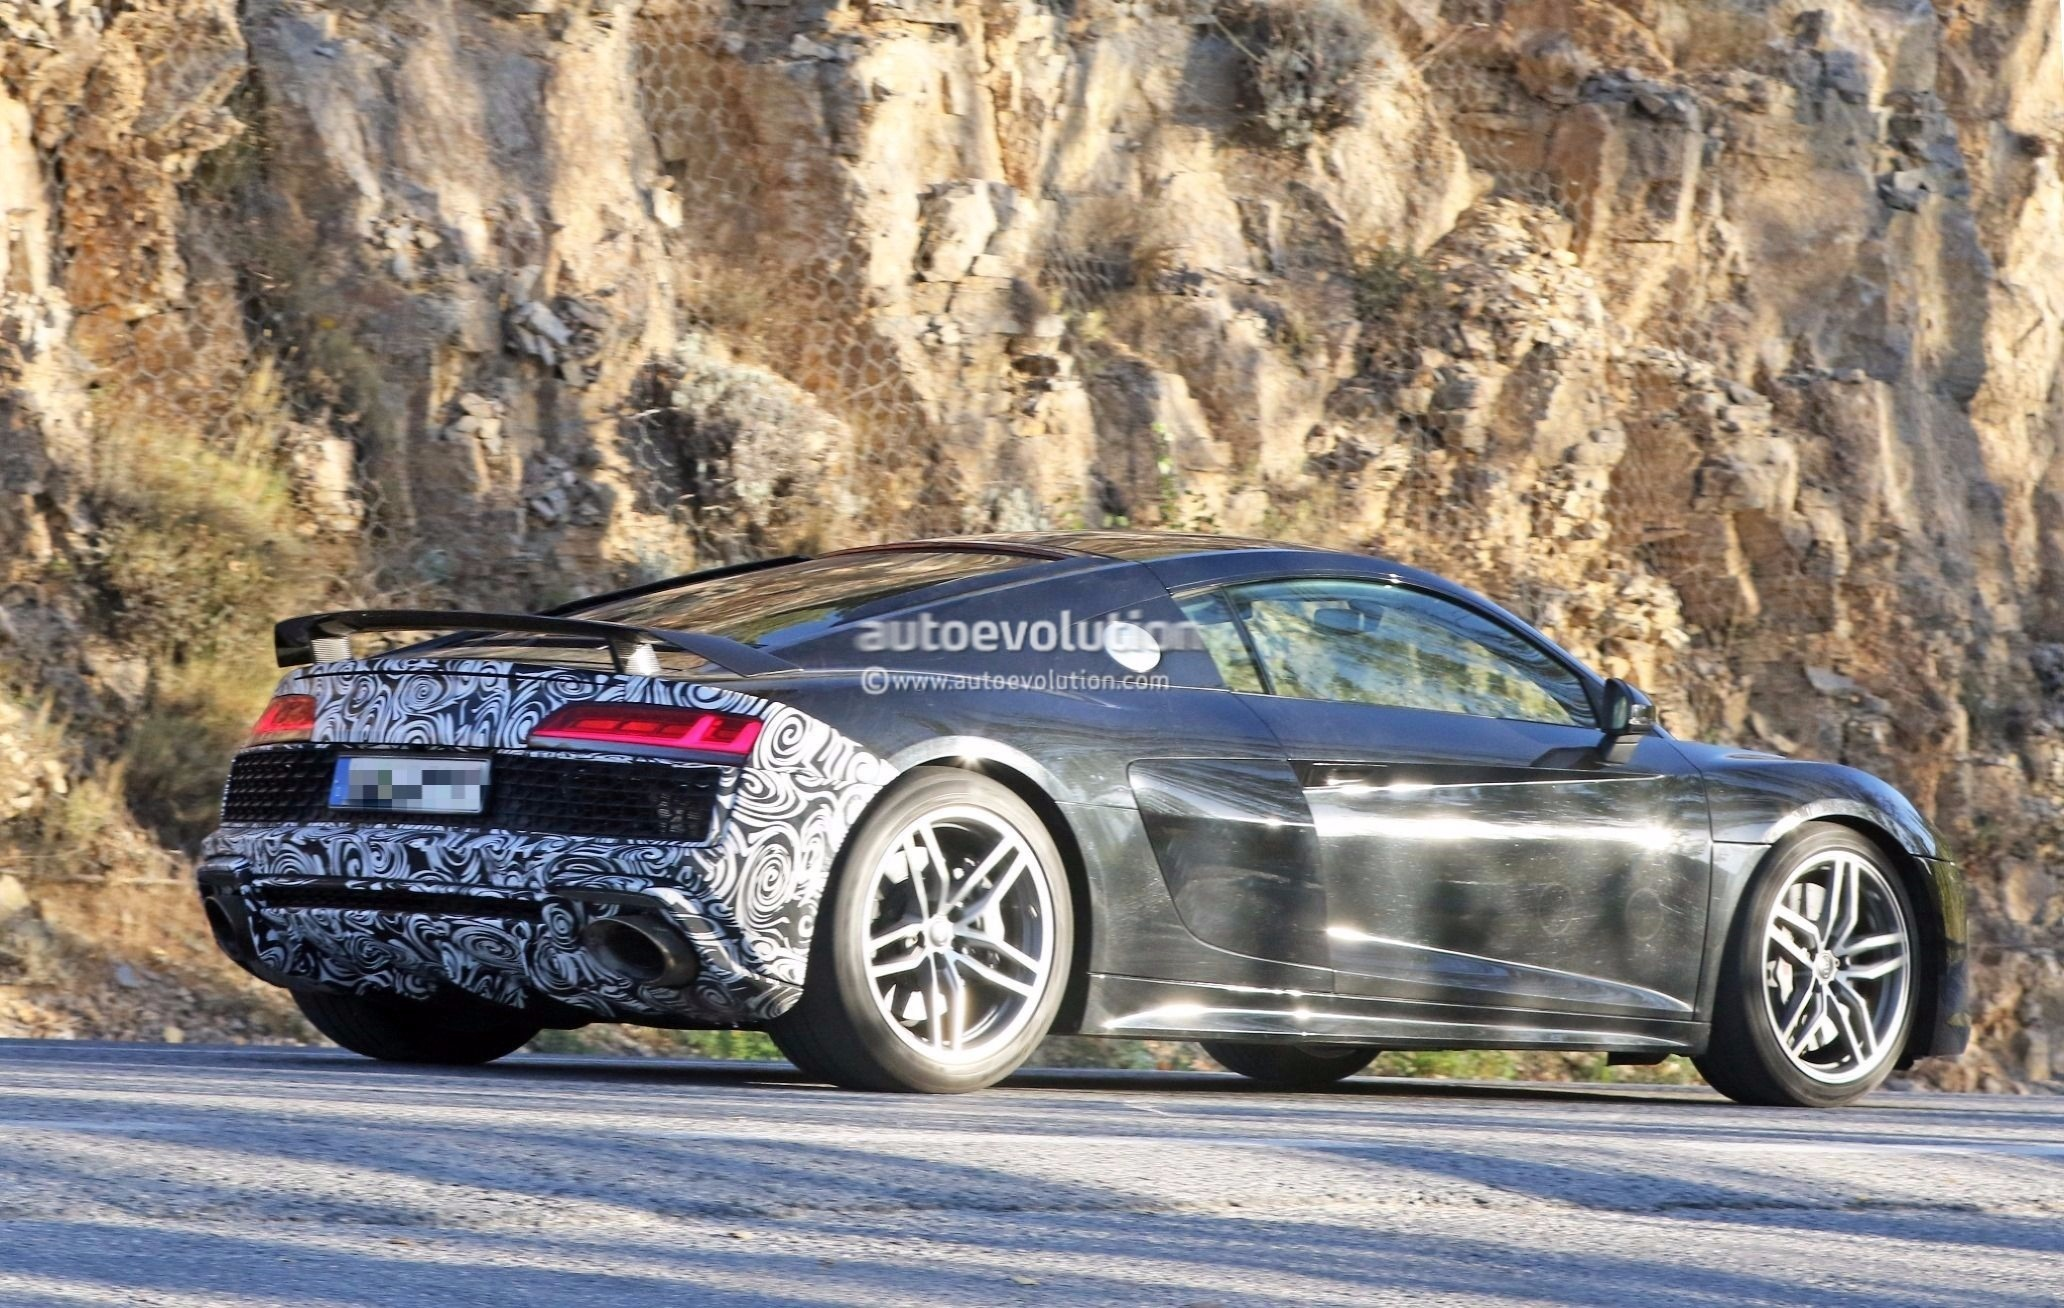 Spyshots: 2019 Audi R8 GT Flaunts Two Huge Oval Exhaust Pipes - autoevolution